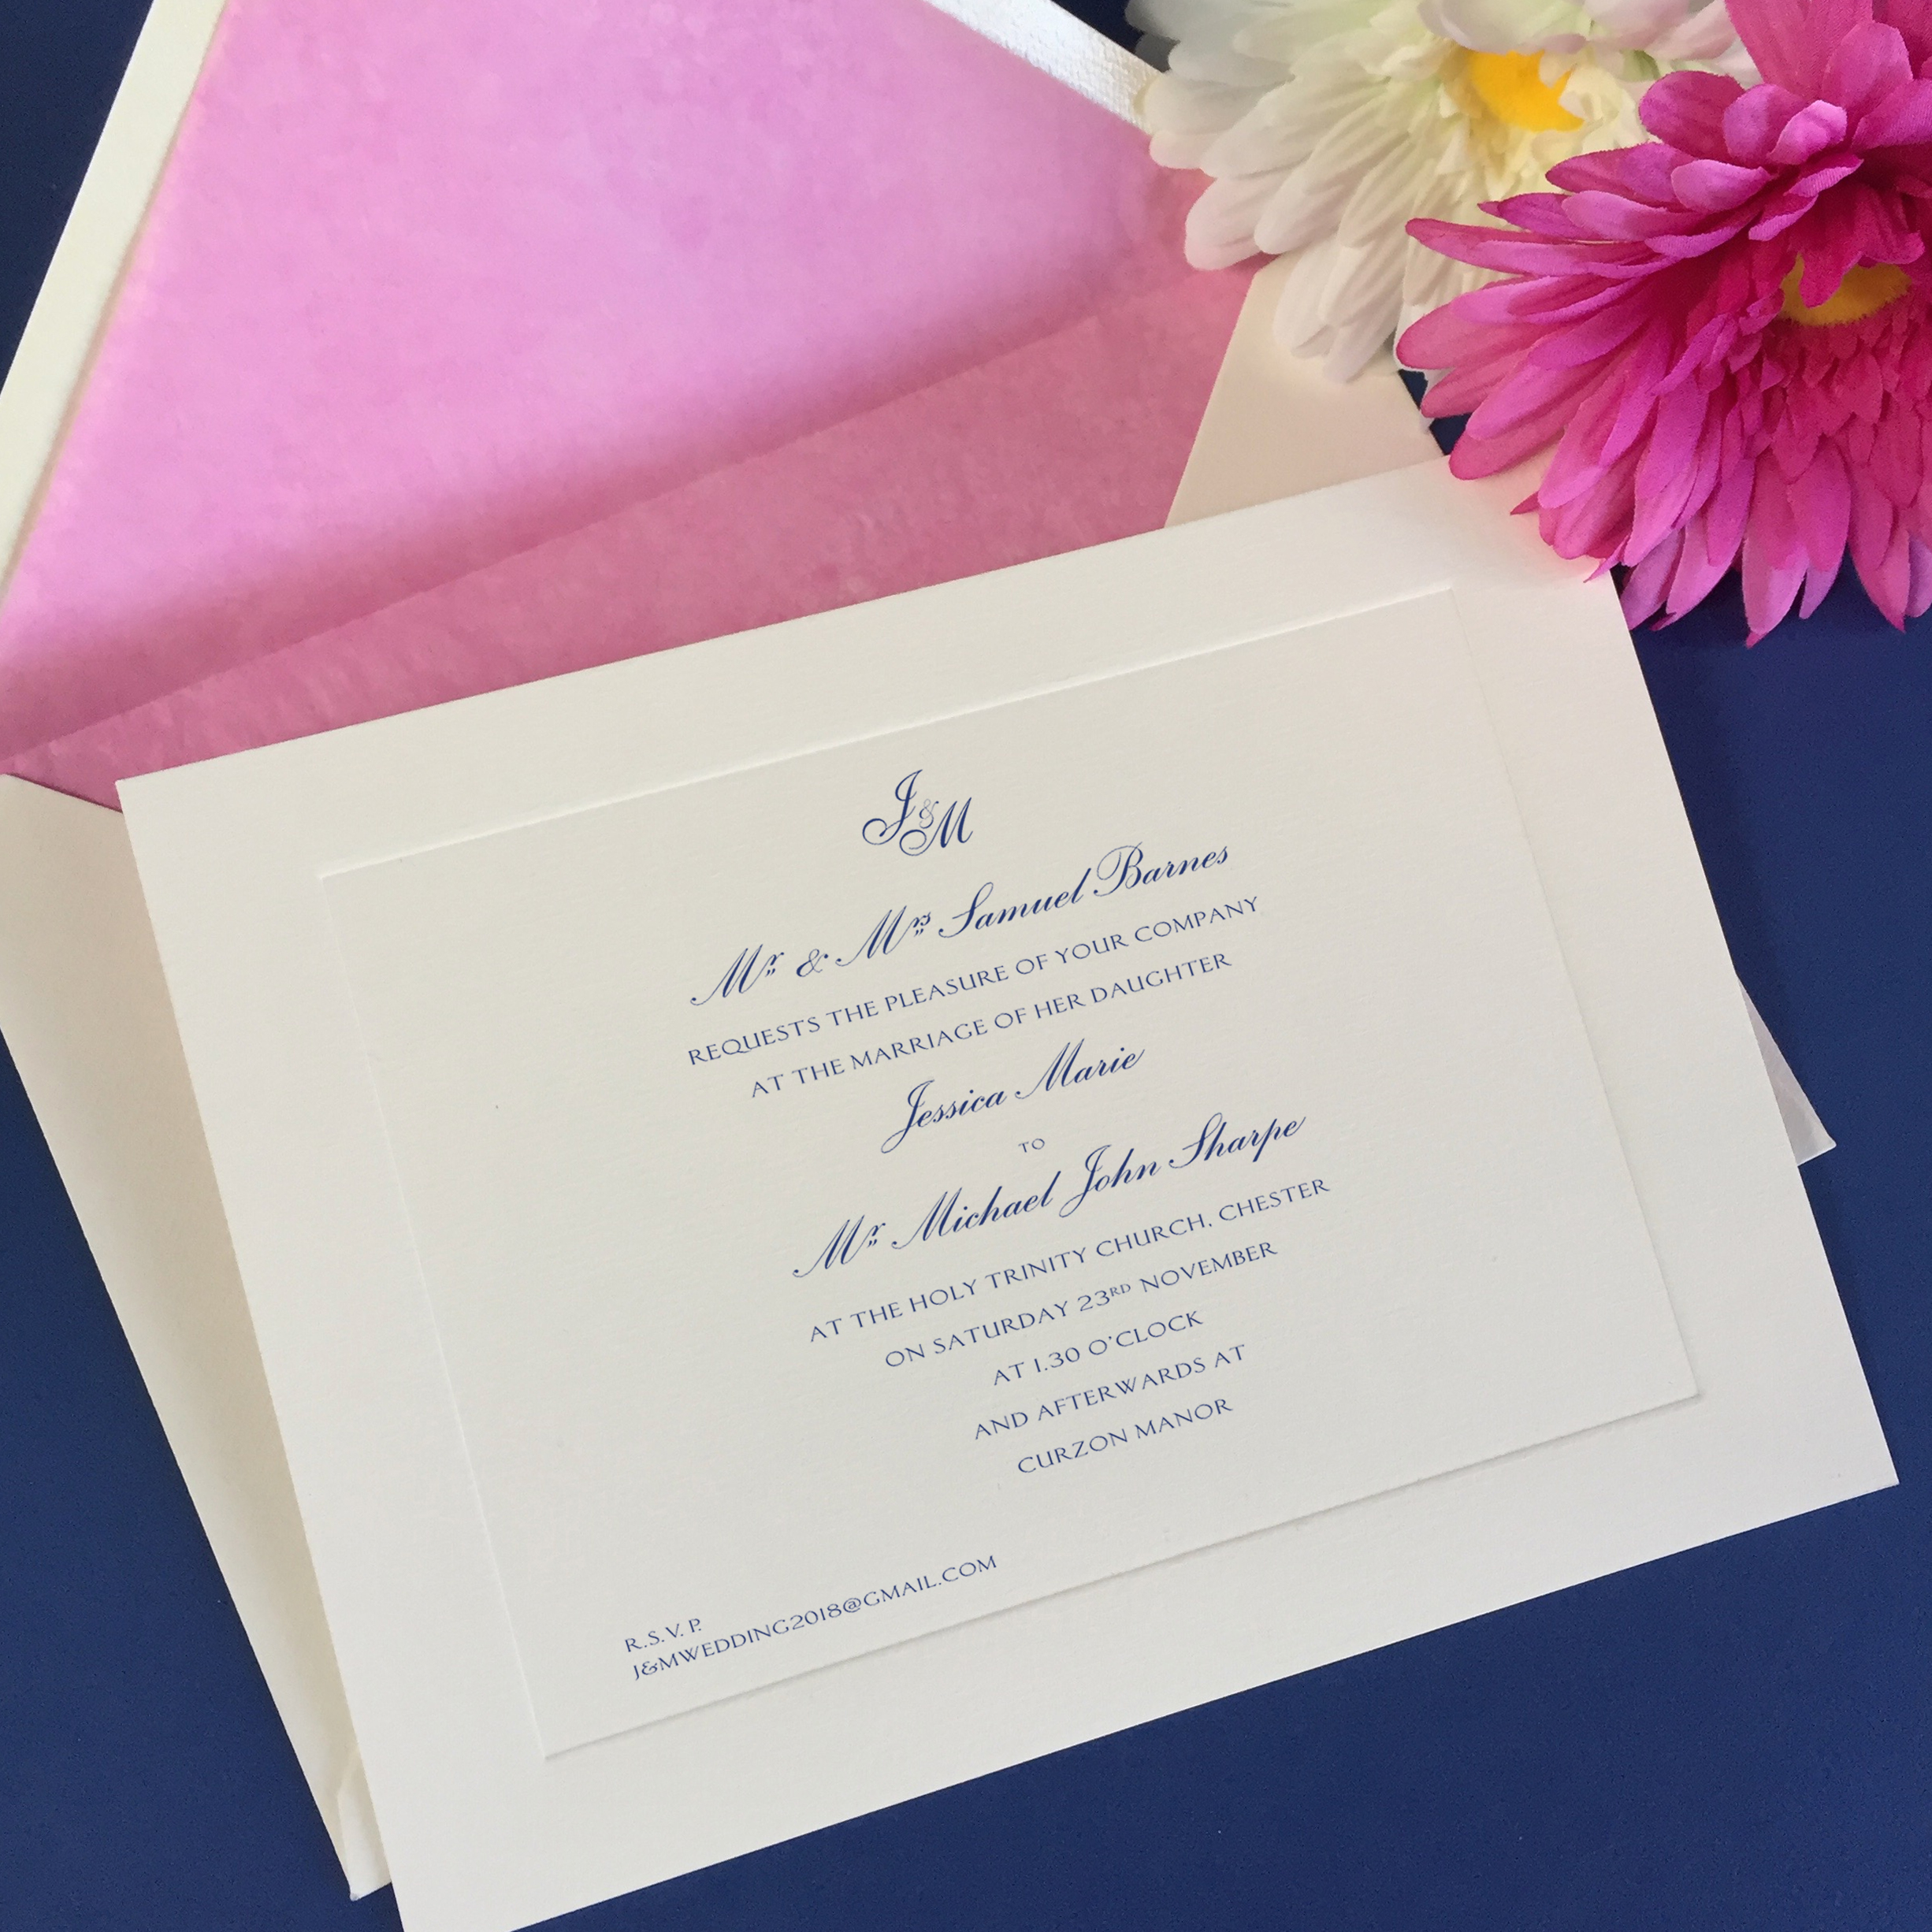 Jessica wedding invitation